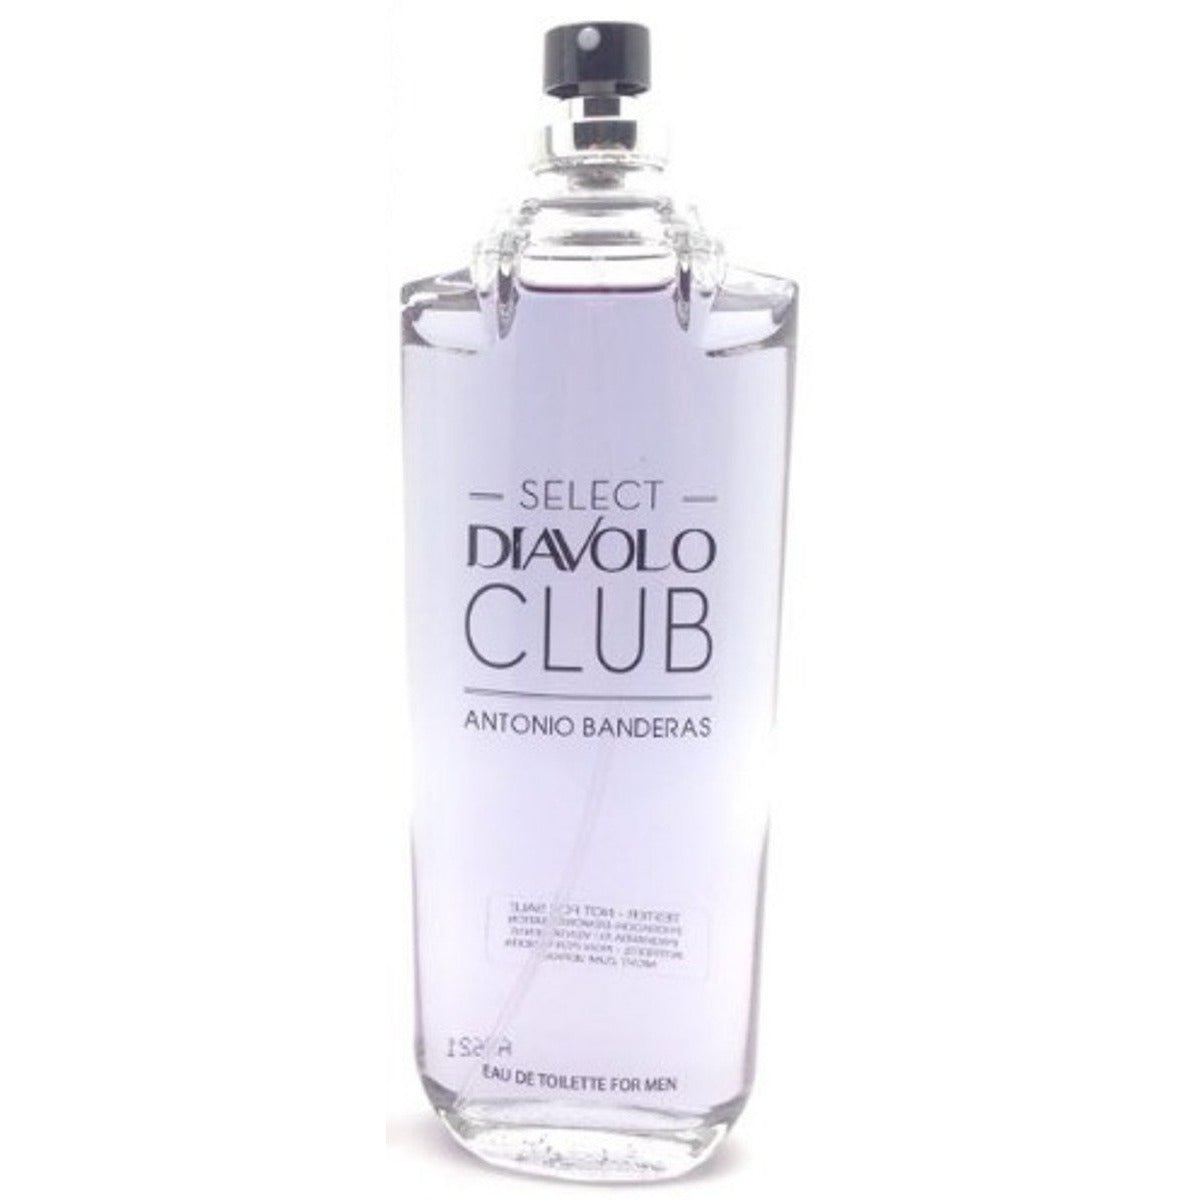 Select Diavolo Club by Antonio Banderas cologne for men EDT 3.3 / 3.4 oz New Tester